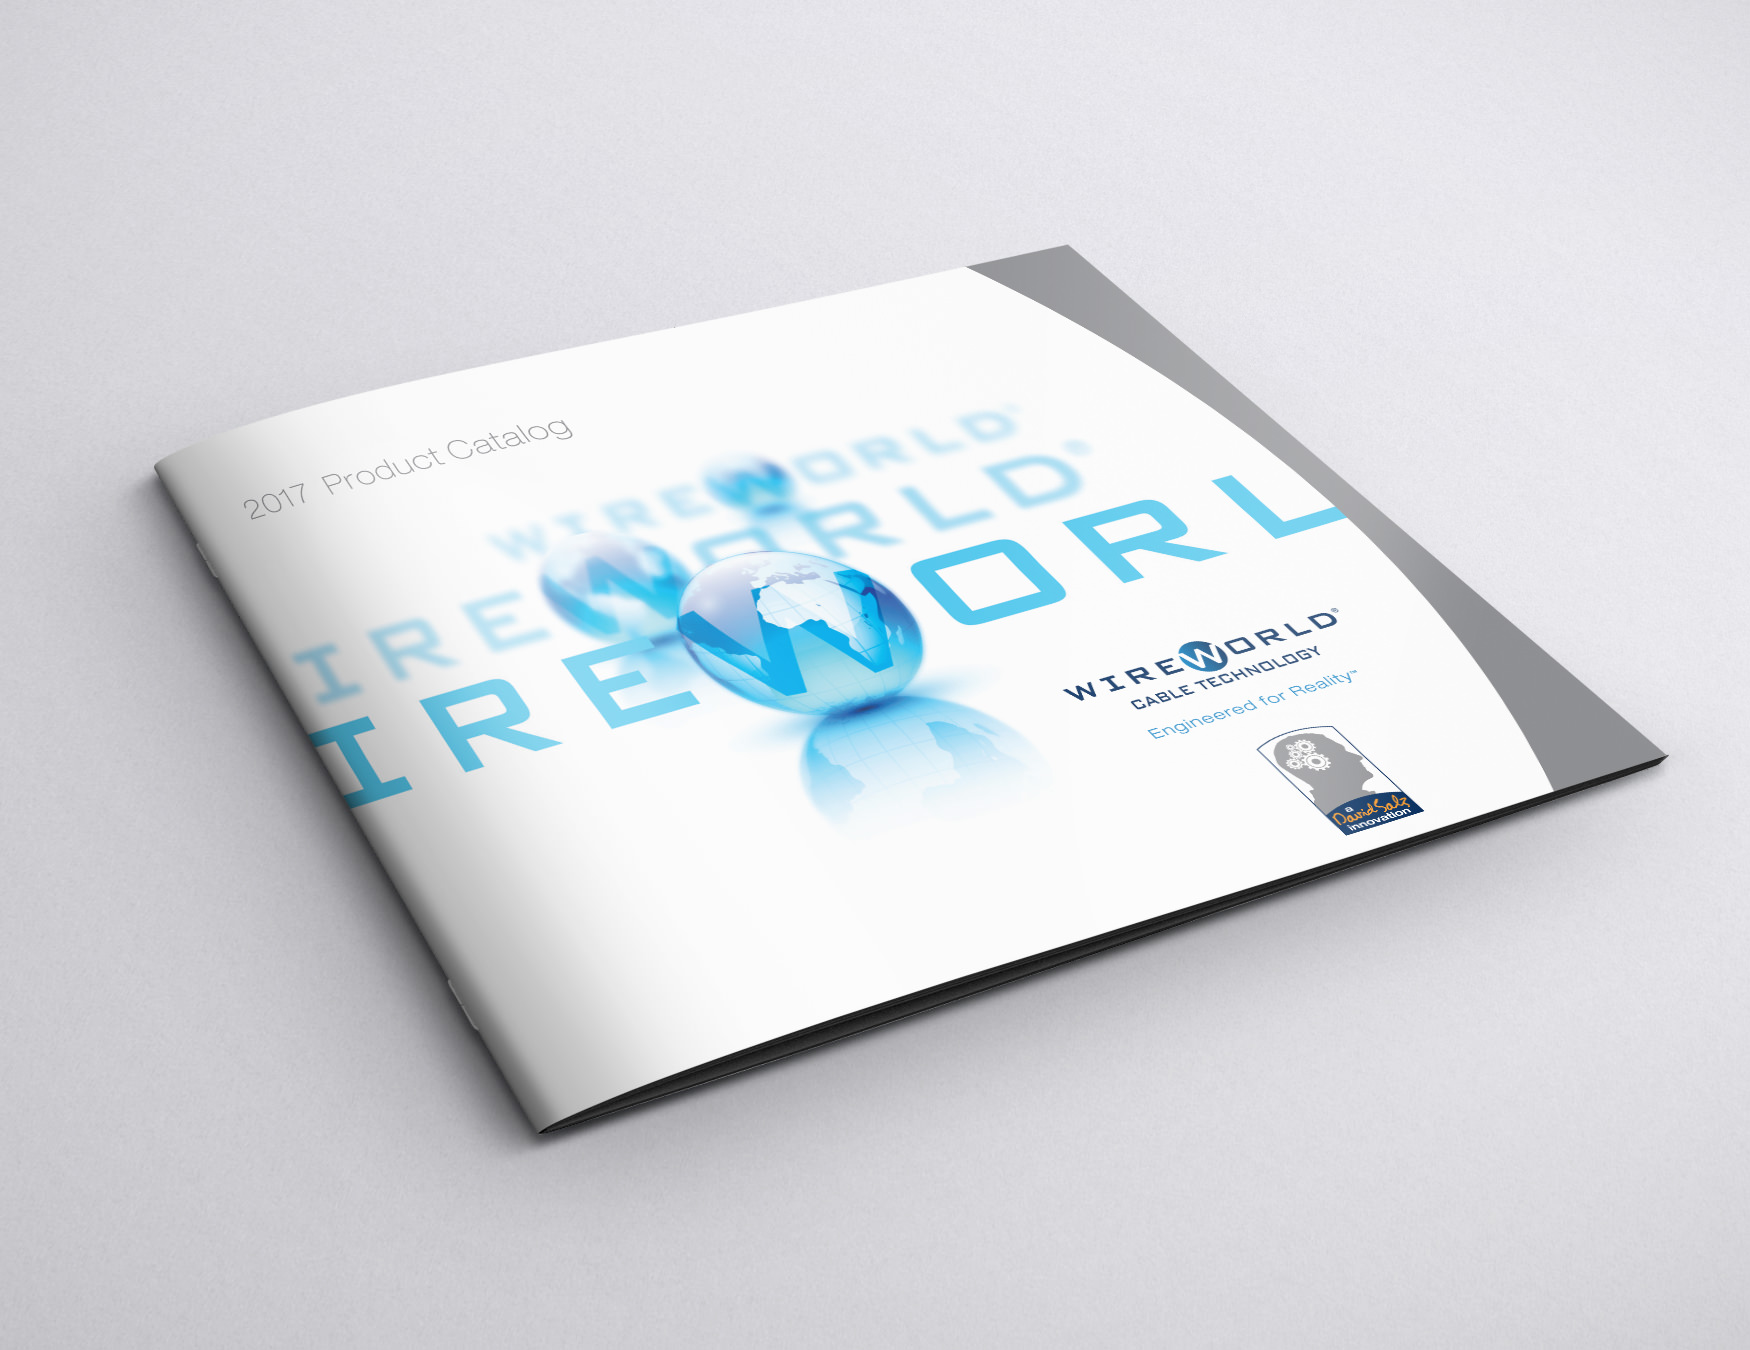 Download the WireWorld Cable Technology Product Catalogue